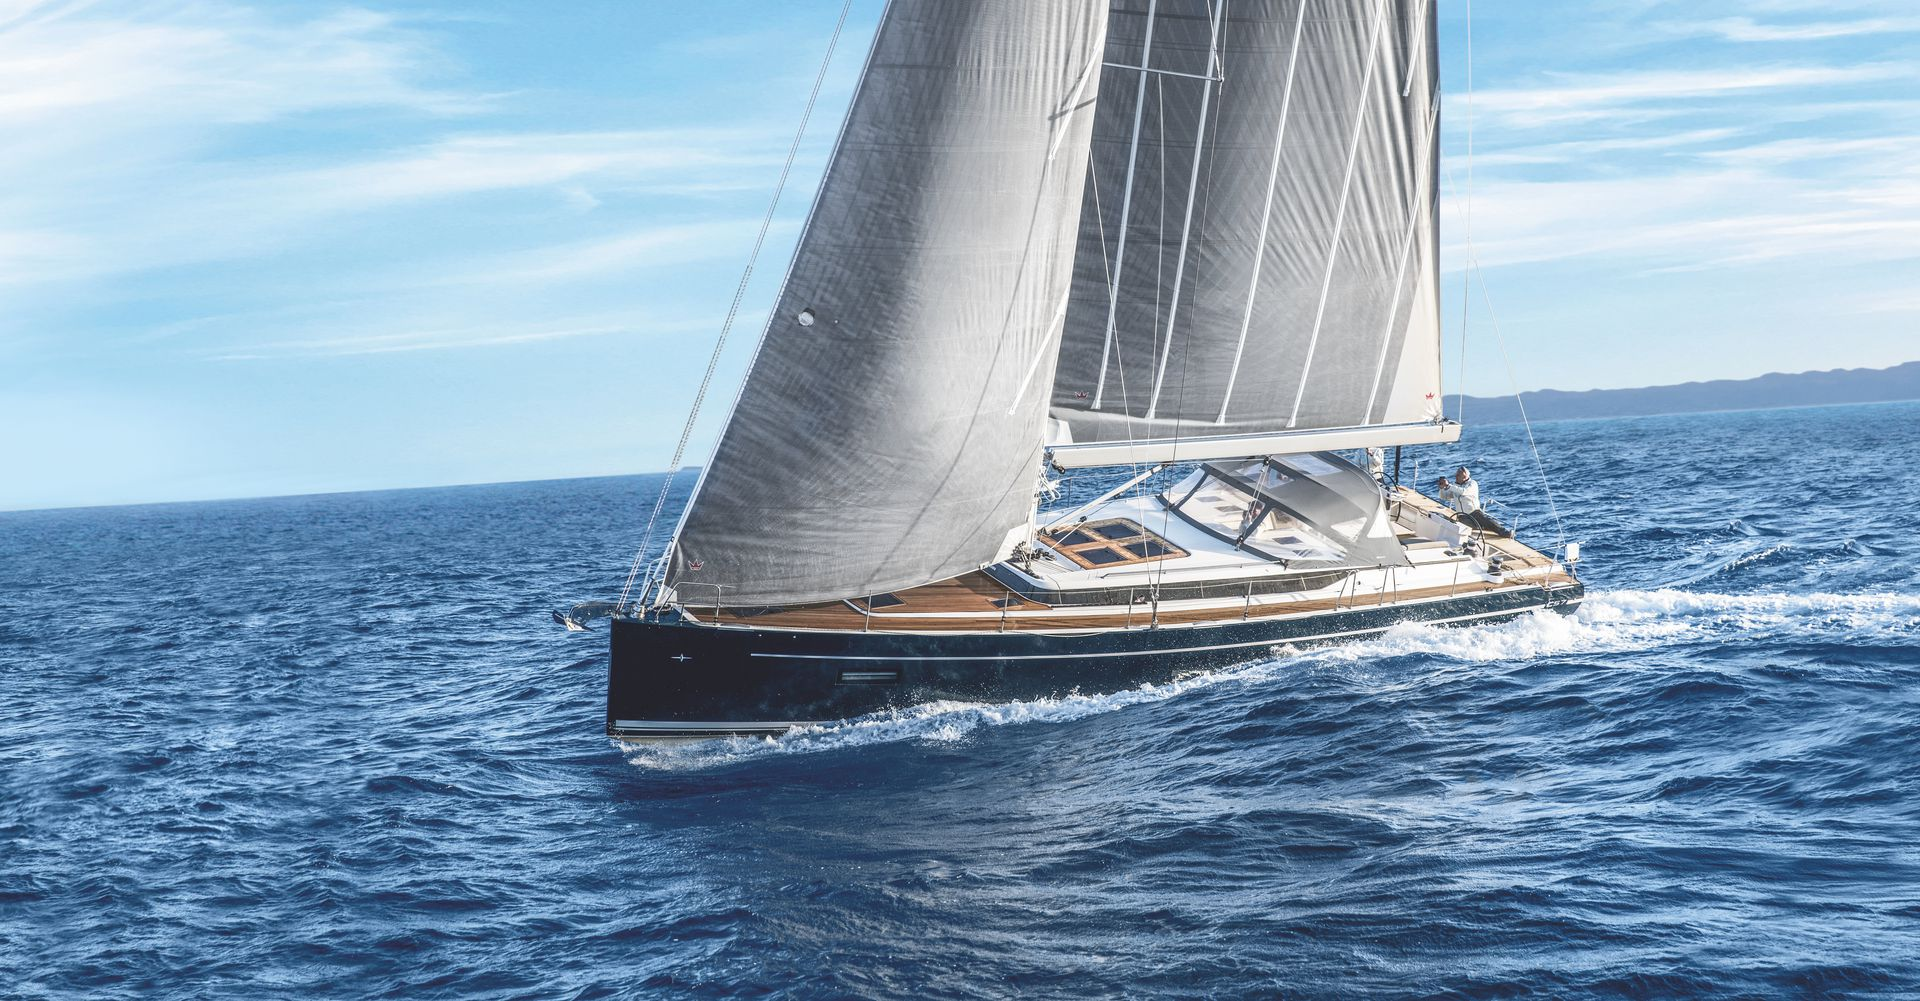 Bavaria C57 Prestige - Sailing Yacht for Charter in Greece